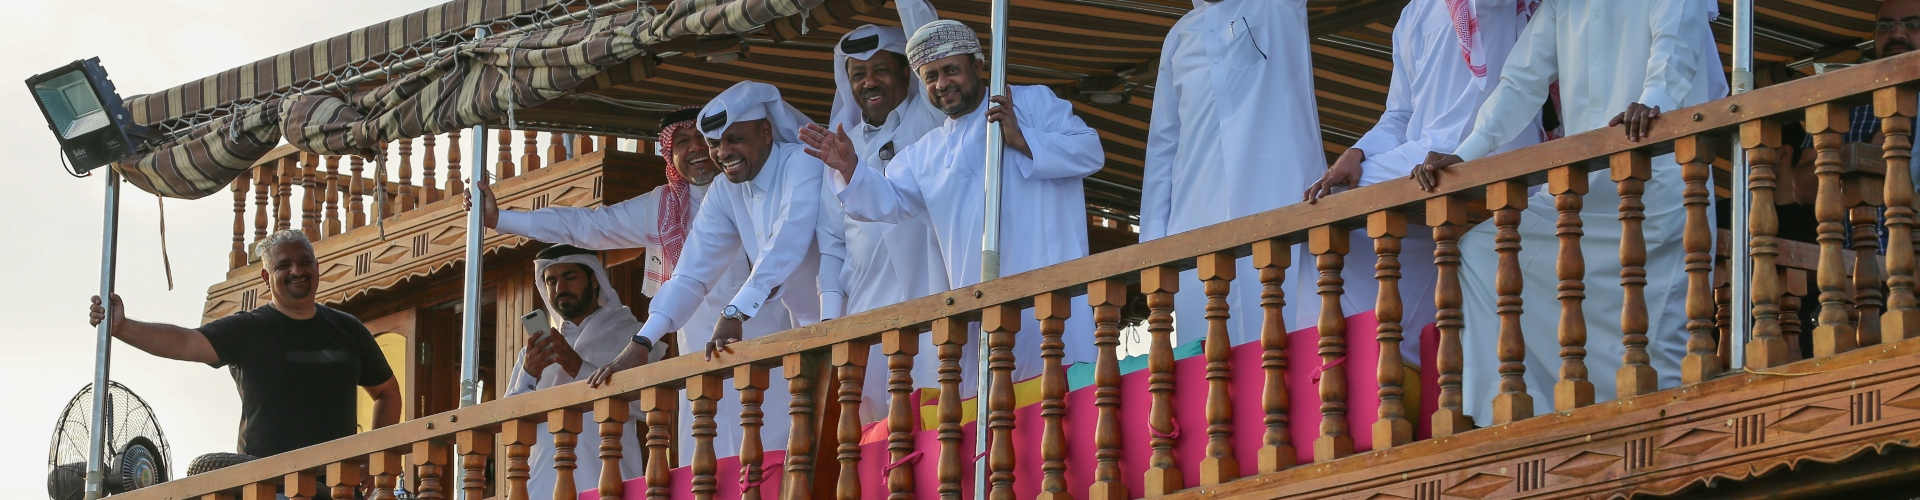 Ibrahim Khalfan on a wooden balcony with SC local ambassadors